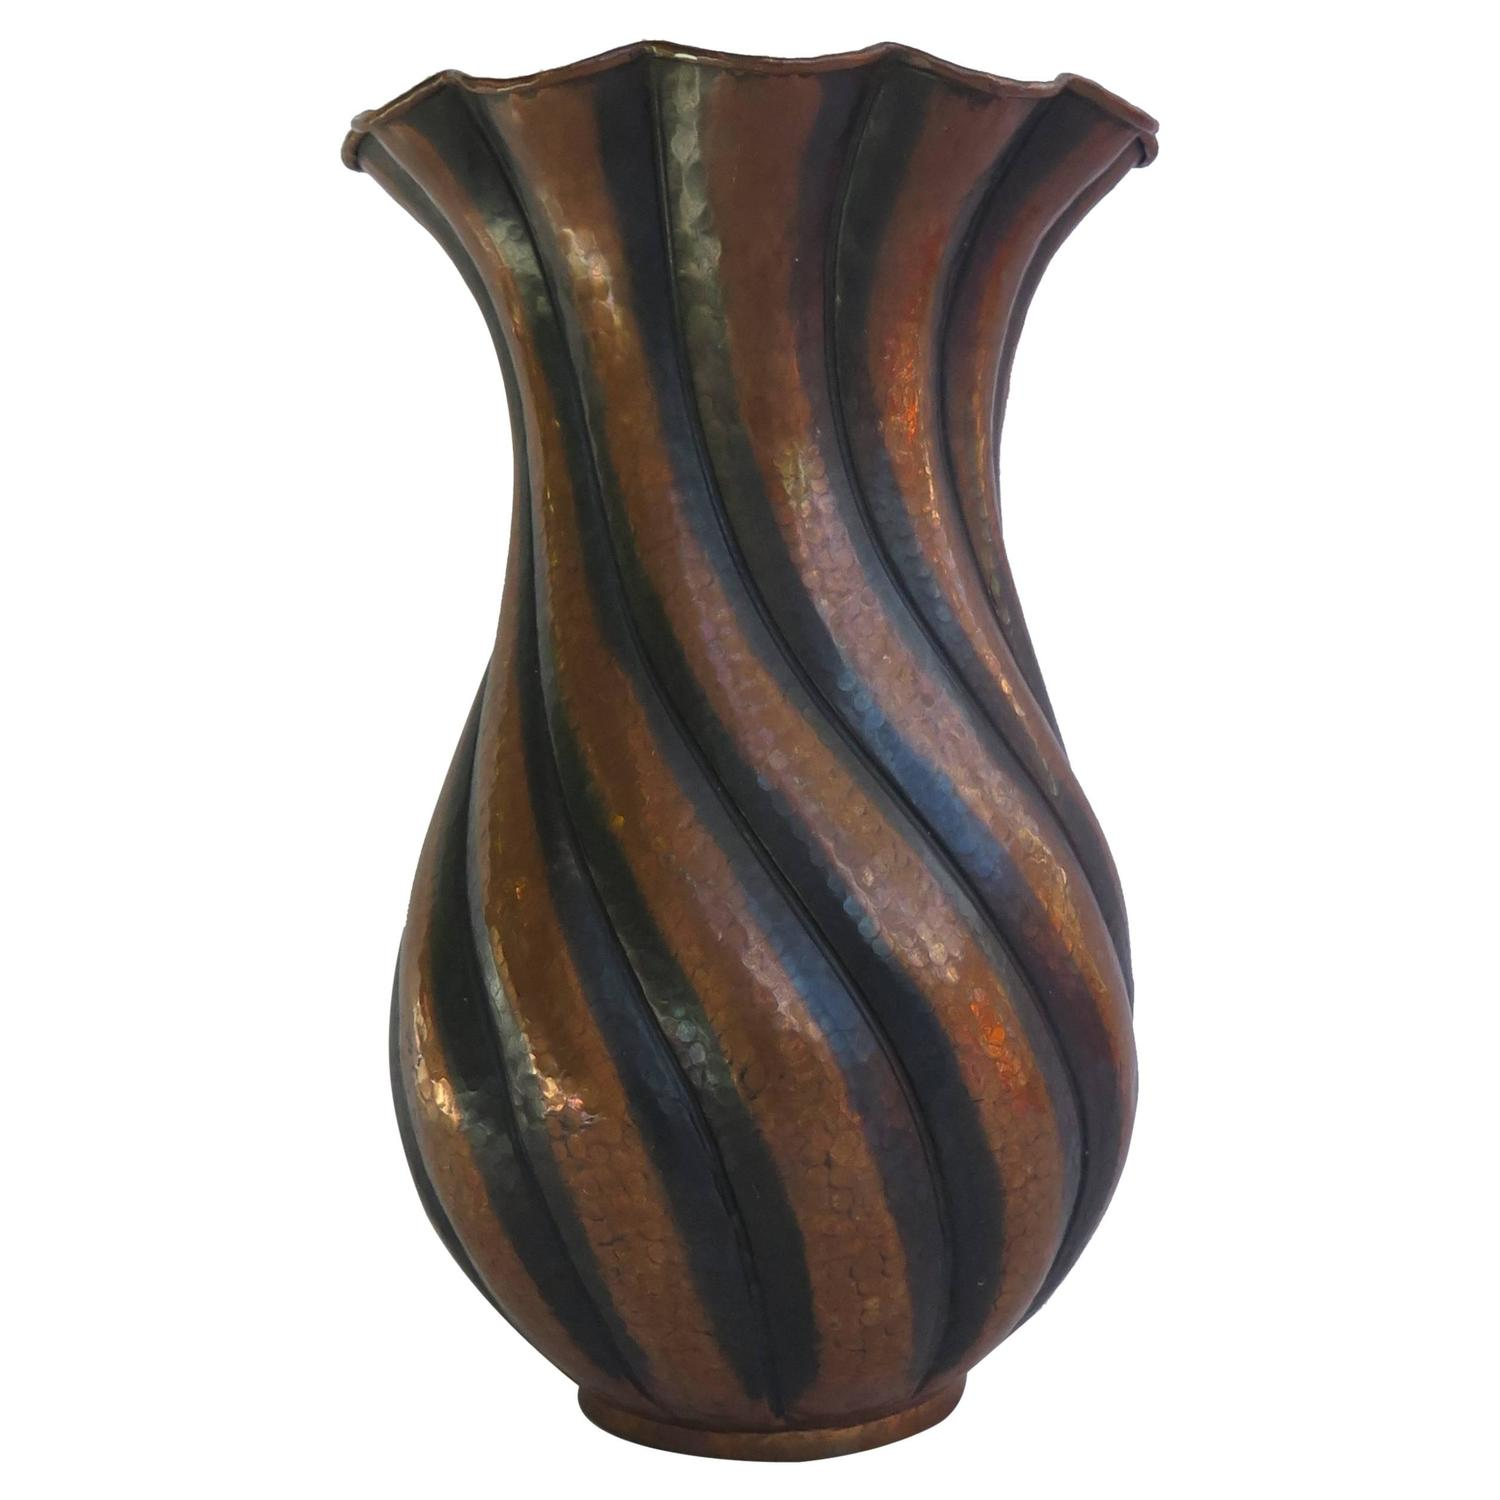 Large egidio casagrande vase hammered copper twist fluted large egidio casagrande vase hammered copper twist fluted italy circa 1930 at 1stdibs reviewsmspy